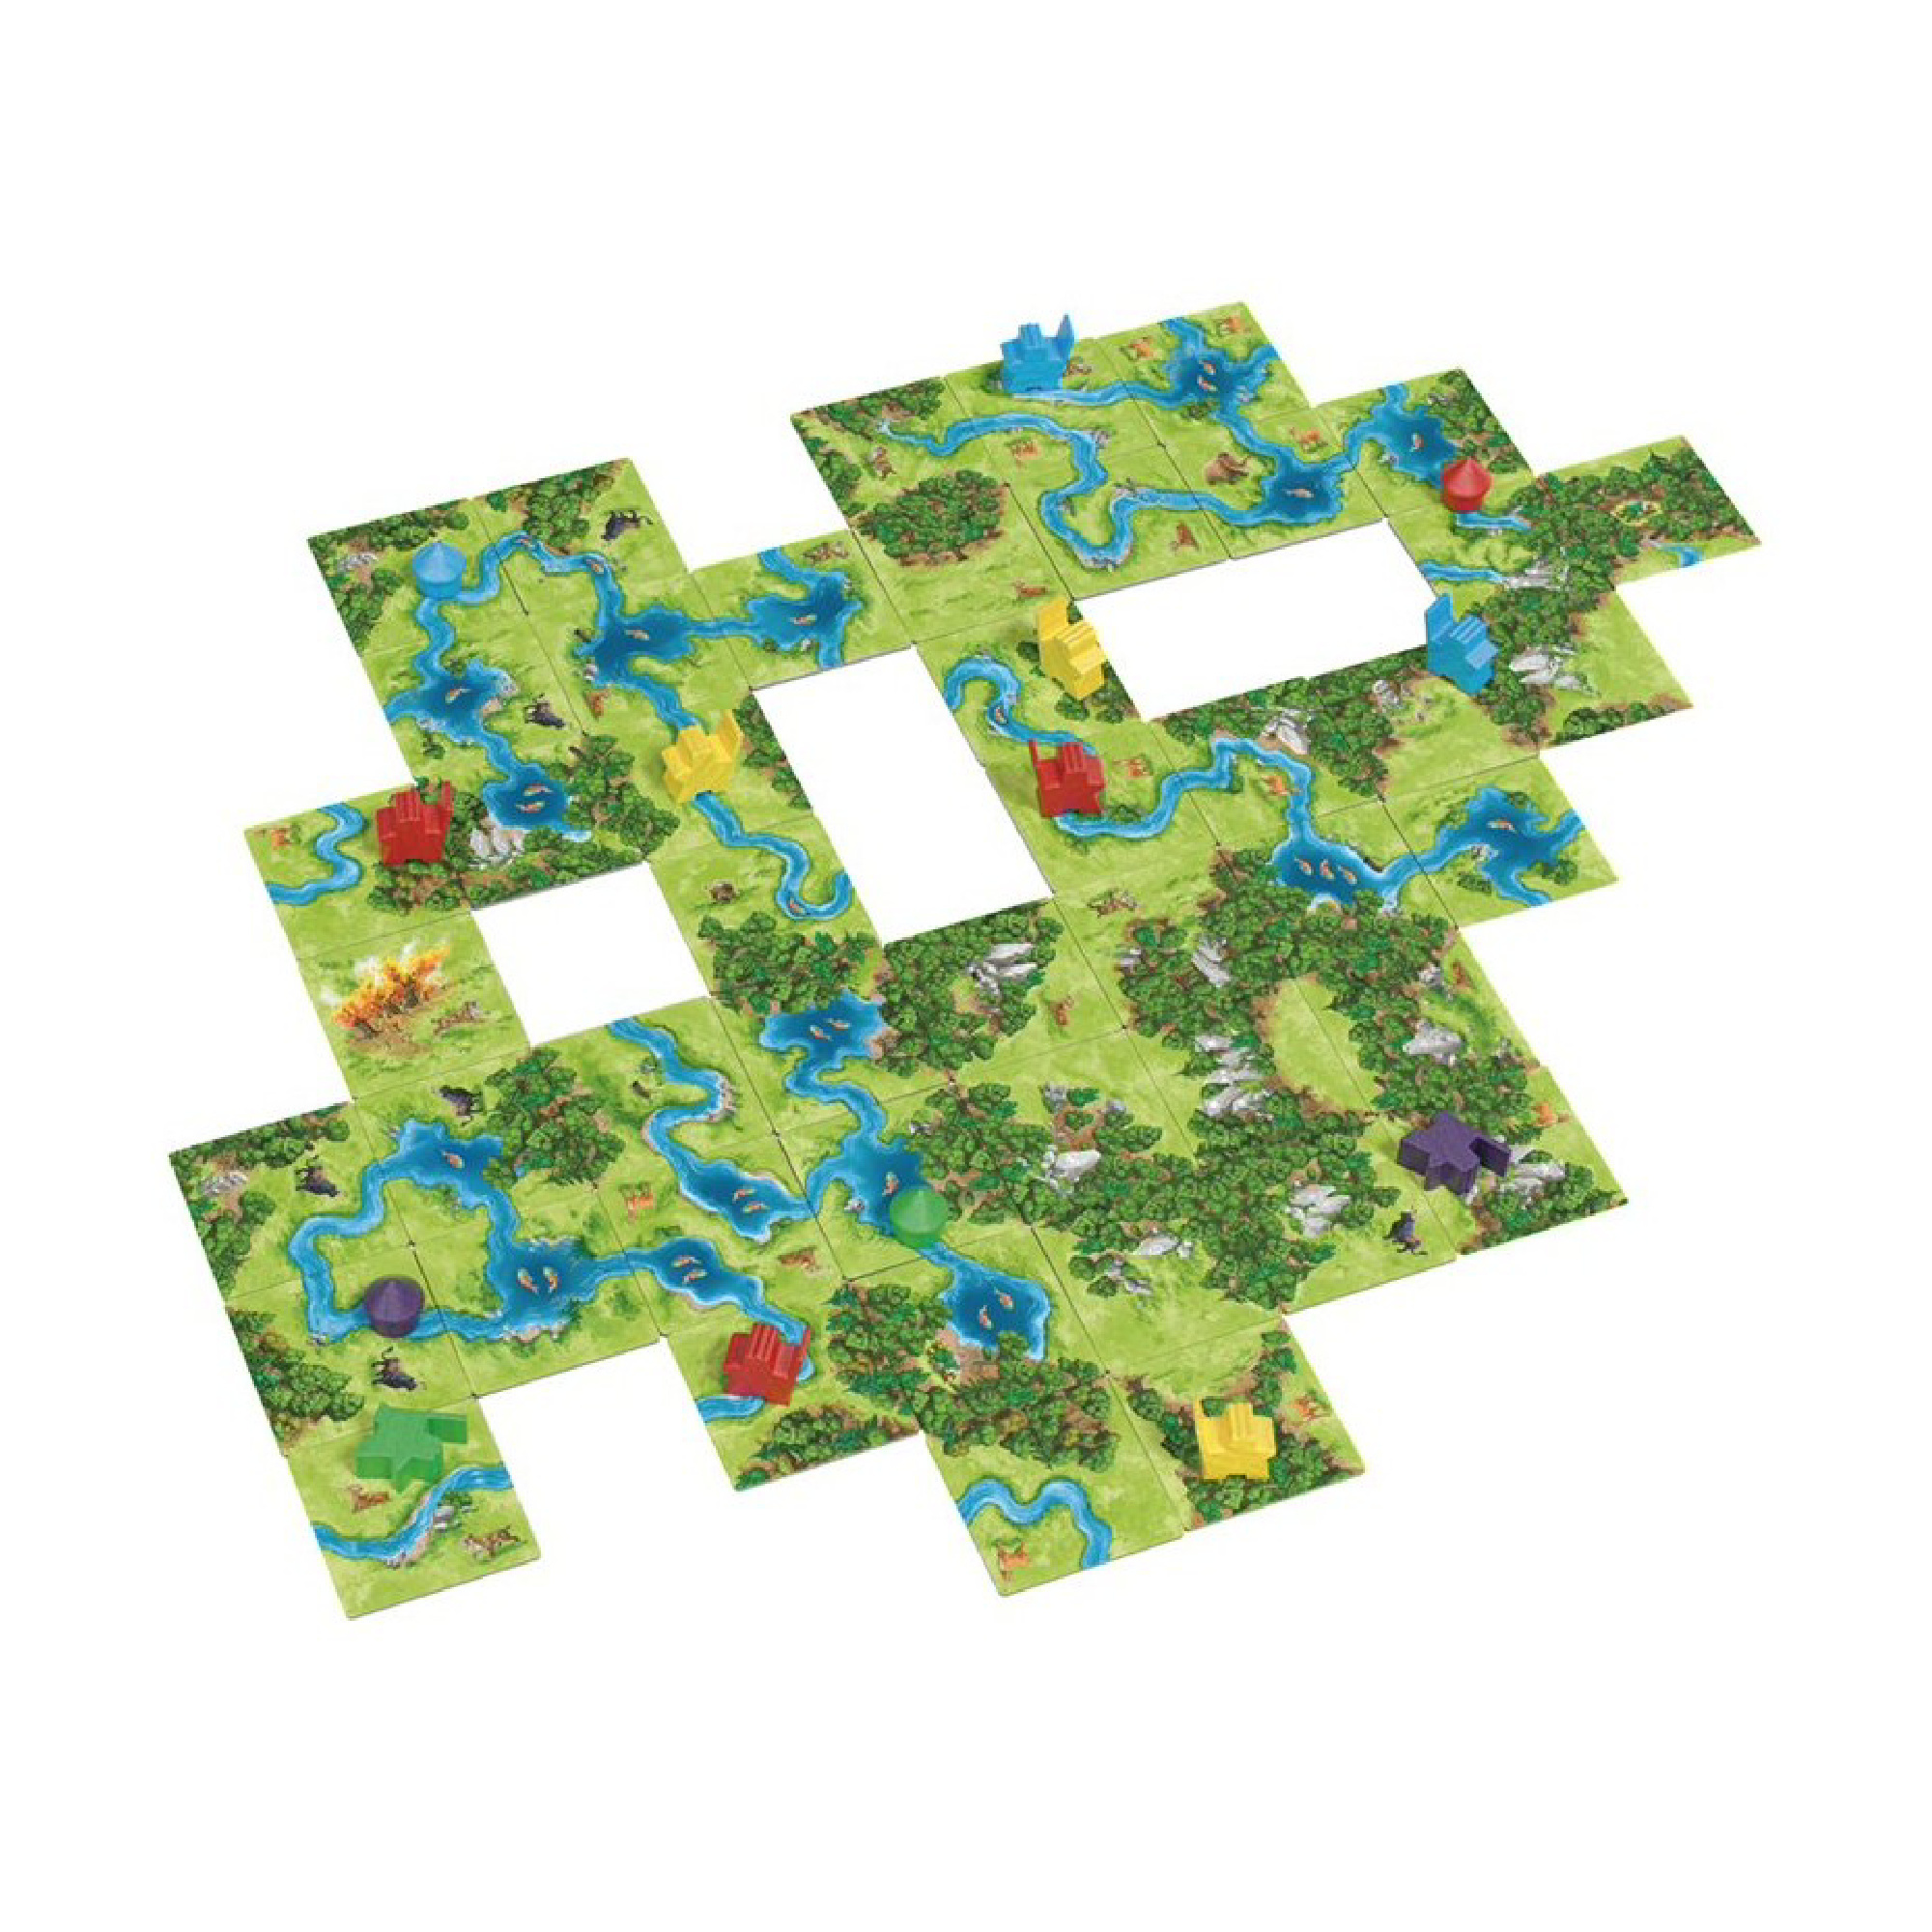 Z-Man Carcassonne: Hunters and Gatherers